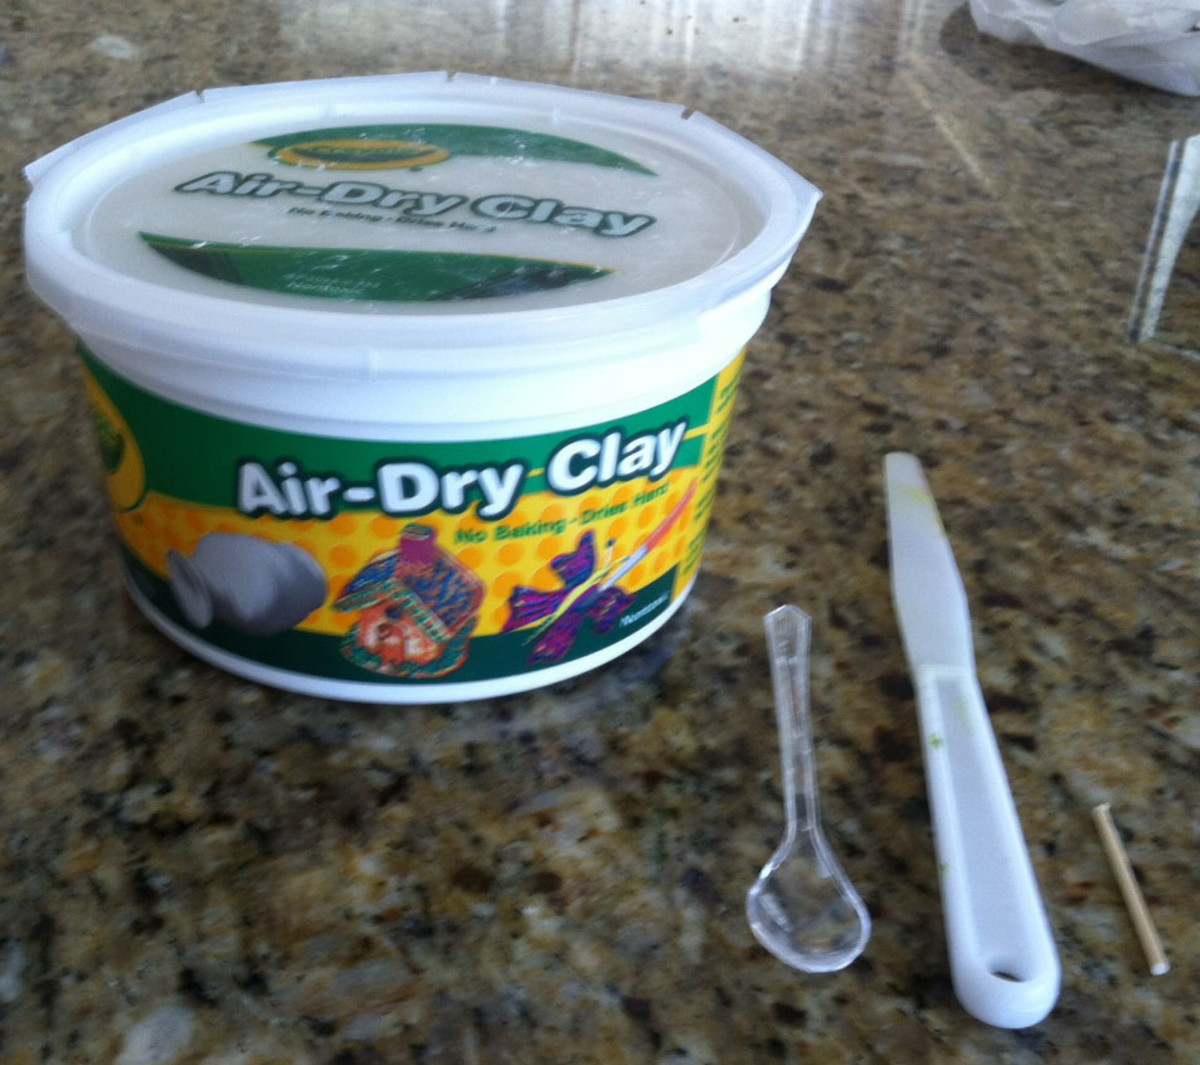 Crayola brand air-dry clay, miniature spoon, plastic palette knife and a miniature dowel. Not pictured but used: toothpicks, wipes, water, paints, brushes.